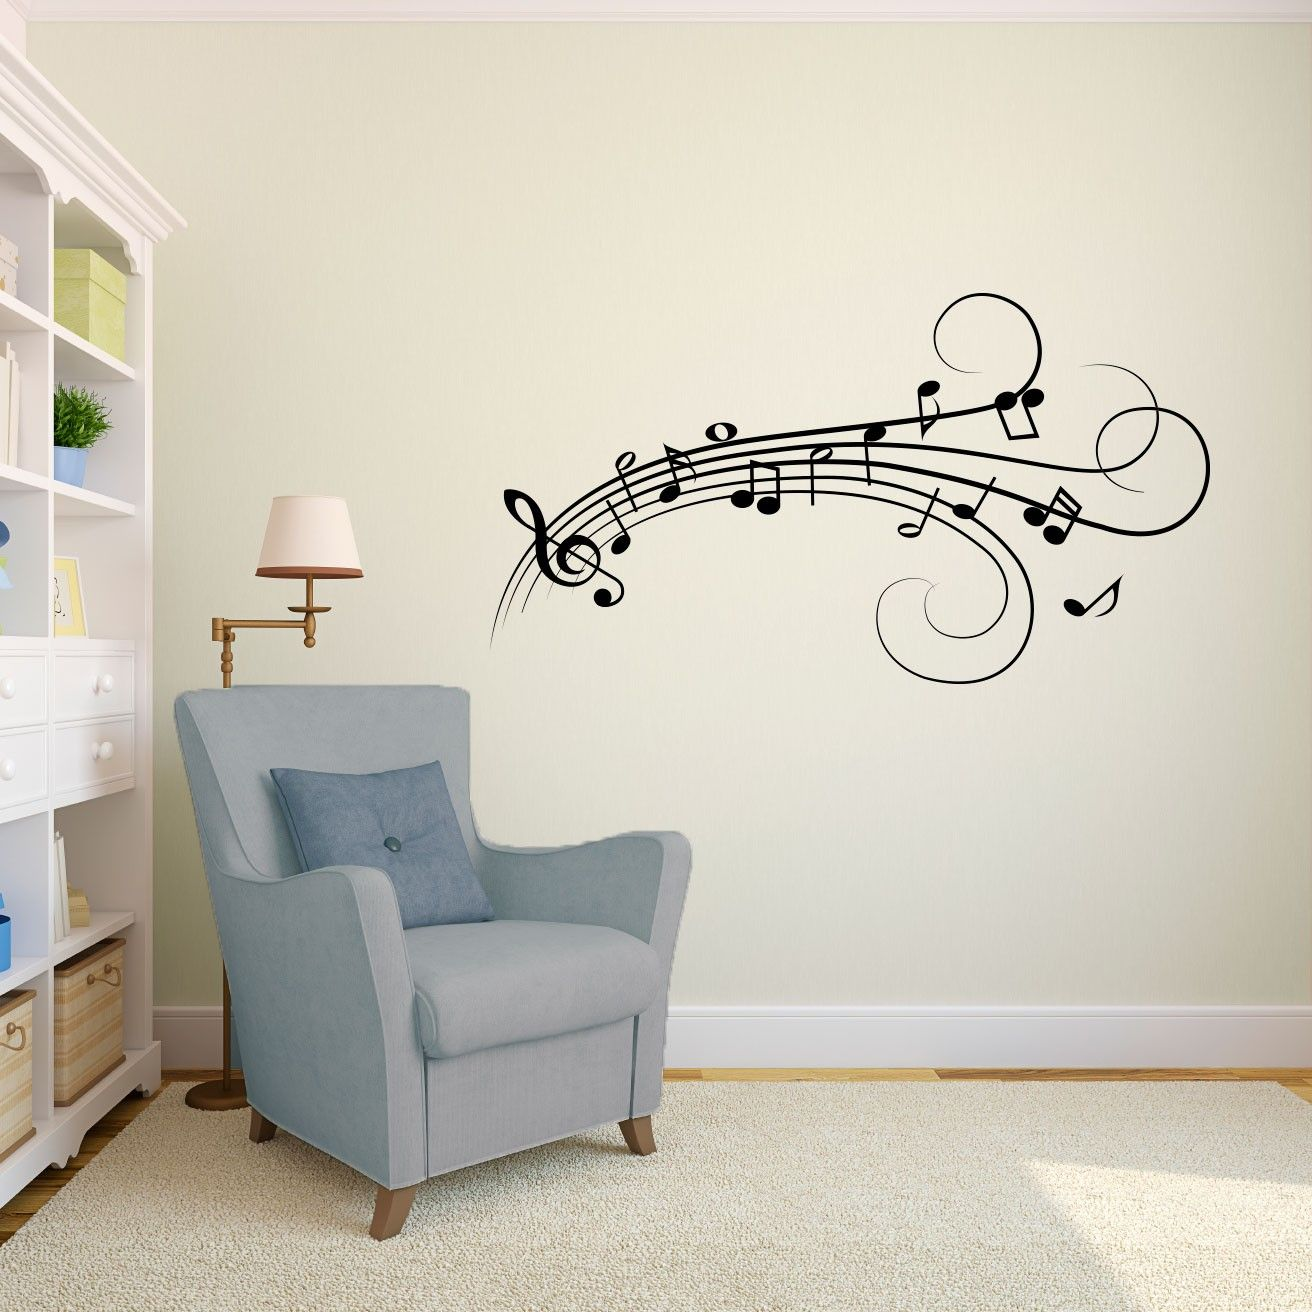 Music Notes - Vinyl Wall Art Decal for Homes, Offices, Kids Rooms ...